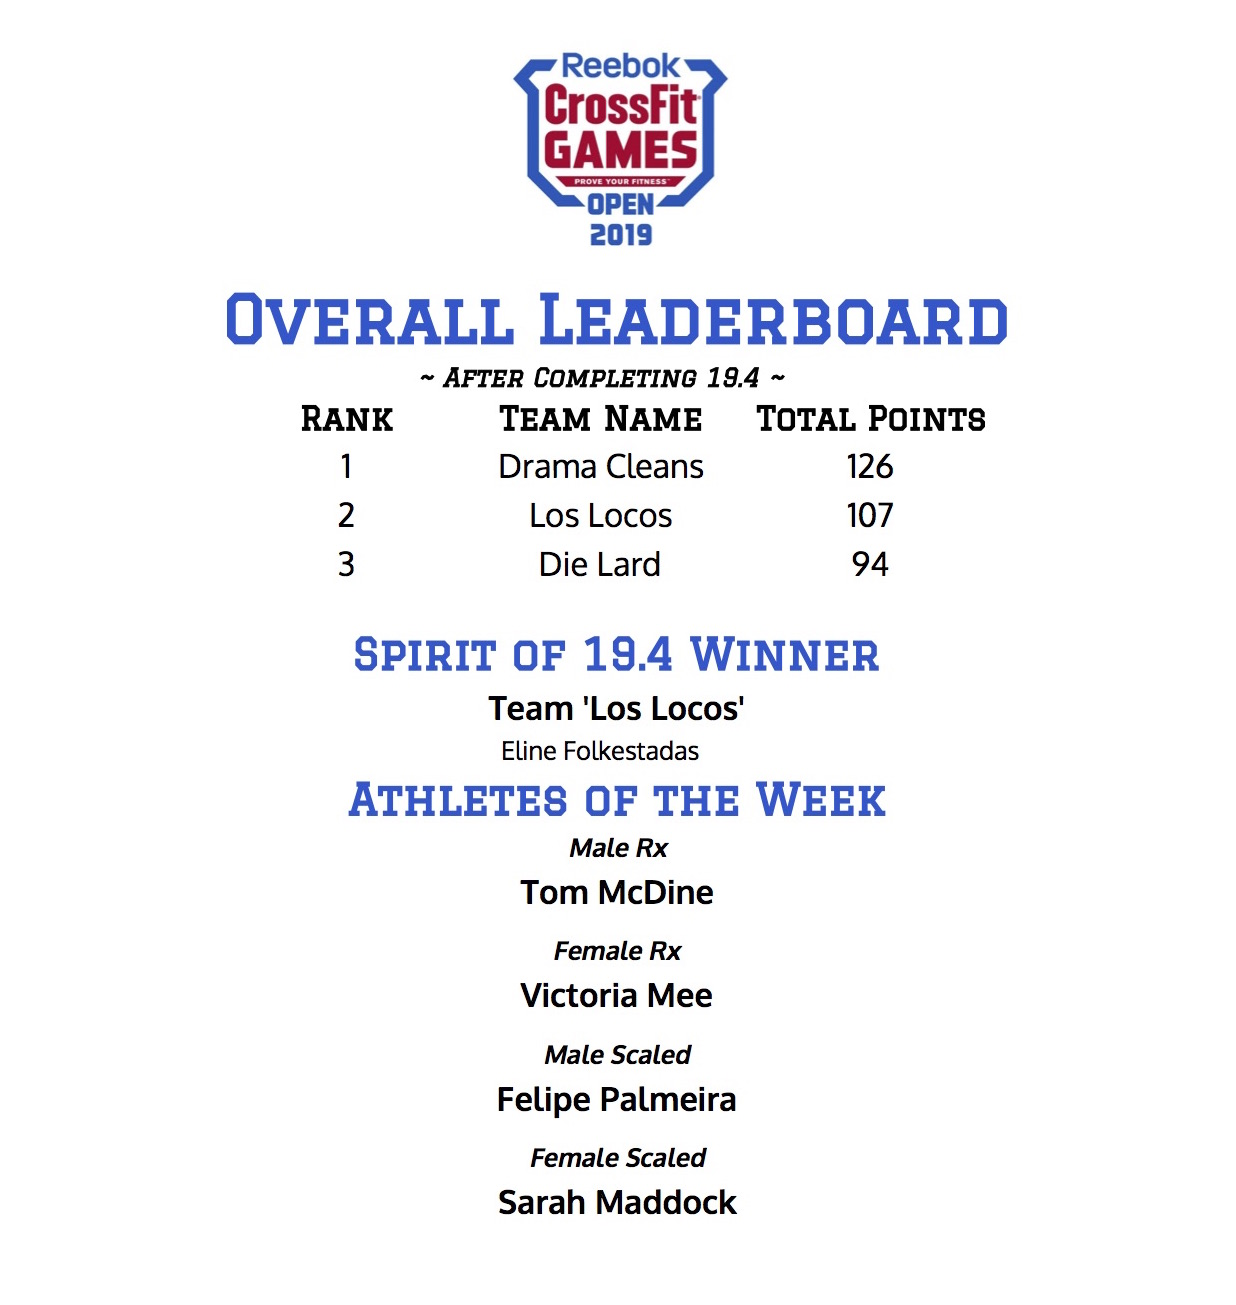 Congrats to our top athletes, Tom McDine, Victoria Mee, Felipe Palmeira, and Sarah Maddock, our Spirit of Open 19.4 winner, Eline Folkestadas, and the Top Team for 19.4, Team Los Locos! With one week to go, will anyone take the top overall spot from Team Drama Cleans??